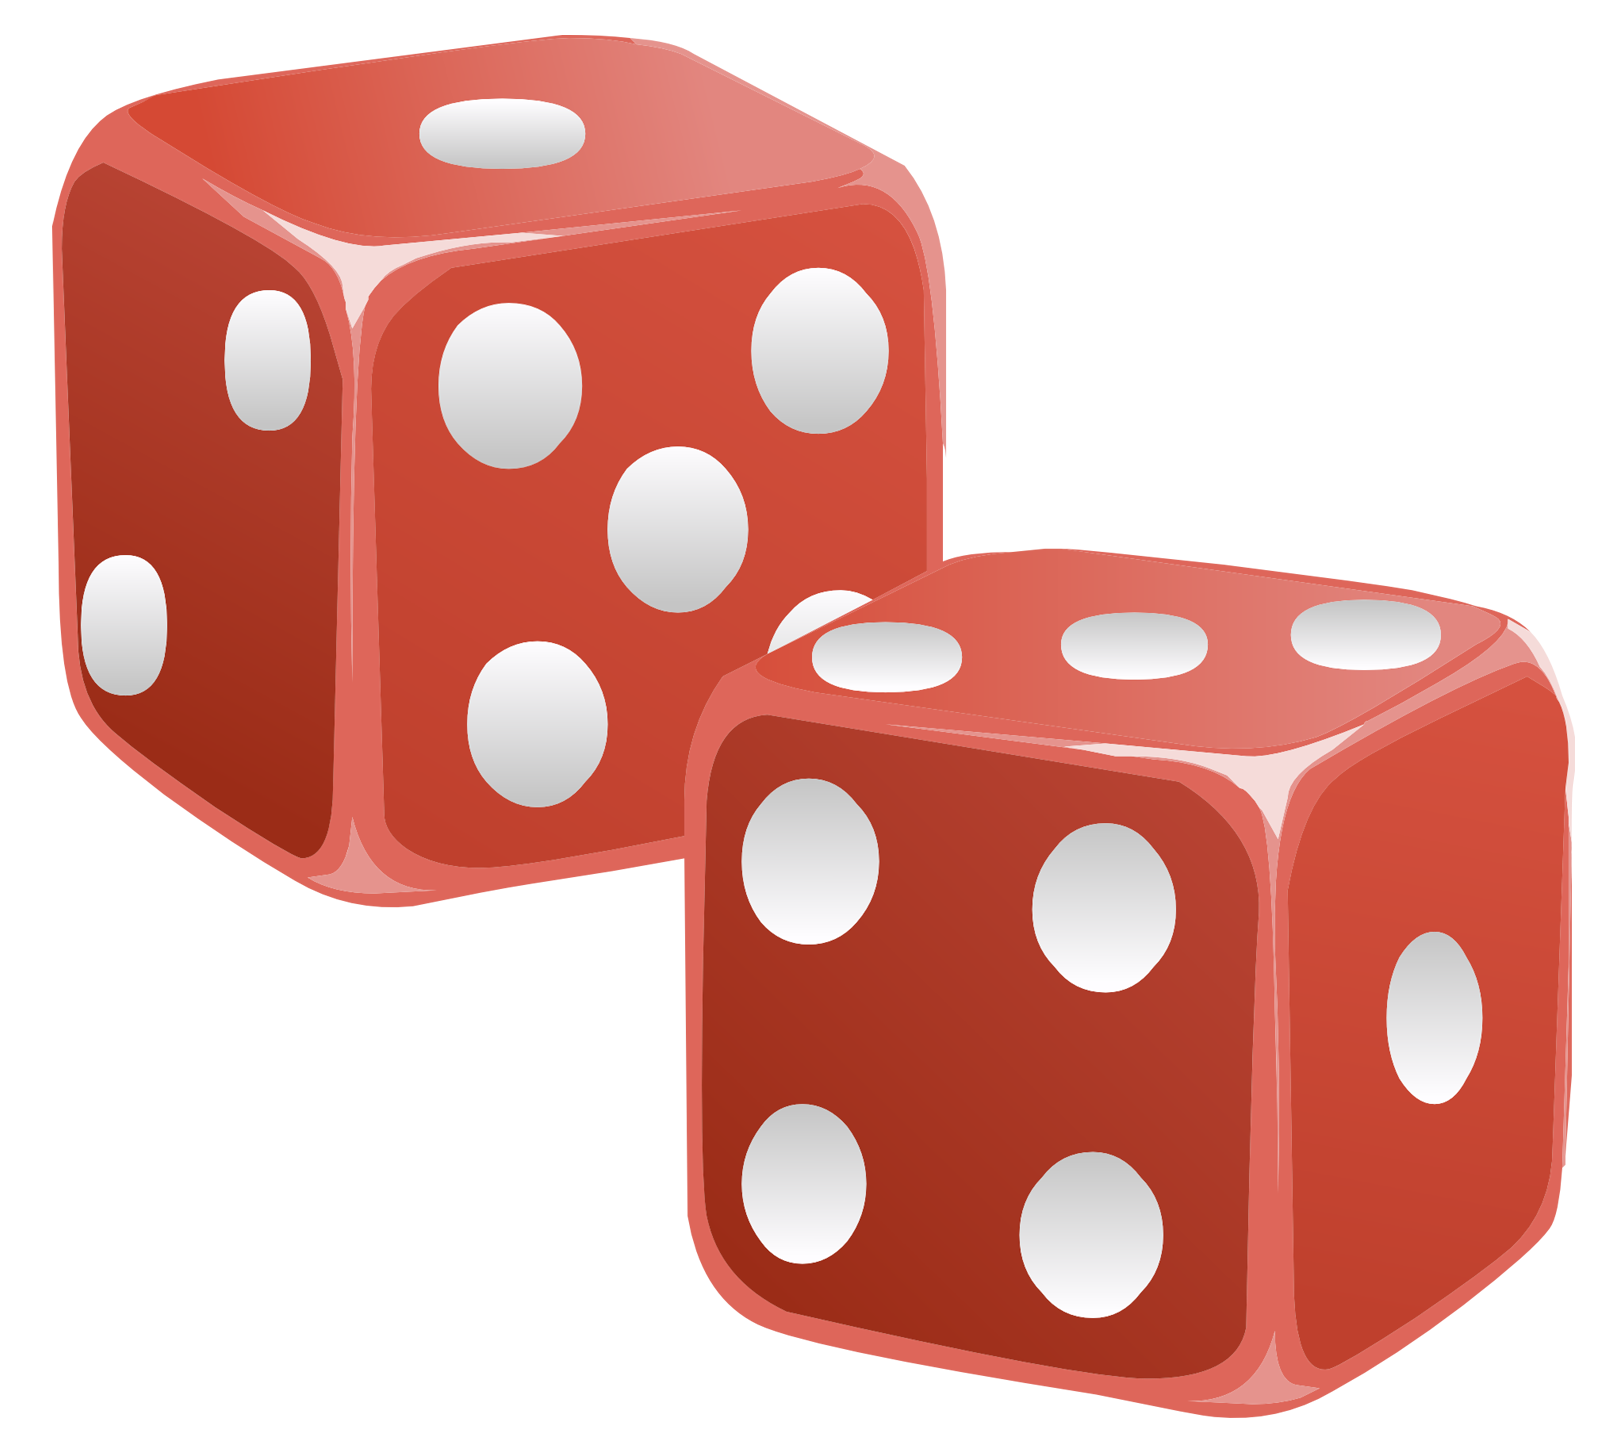 Red dice png image. Games clipart transparent